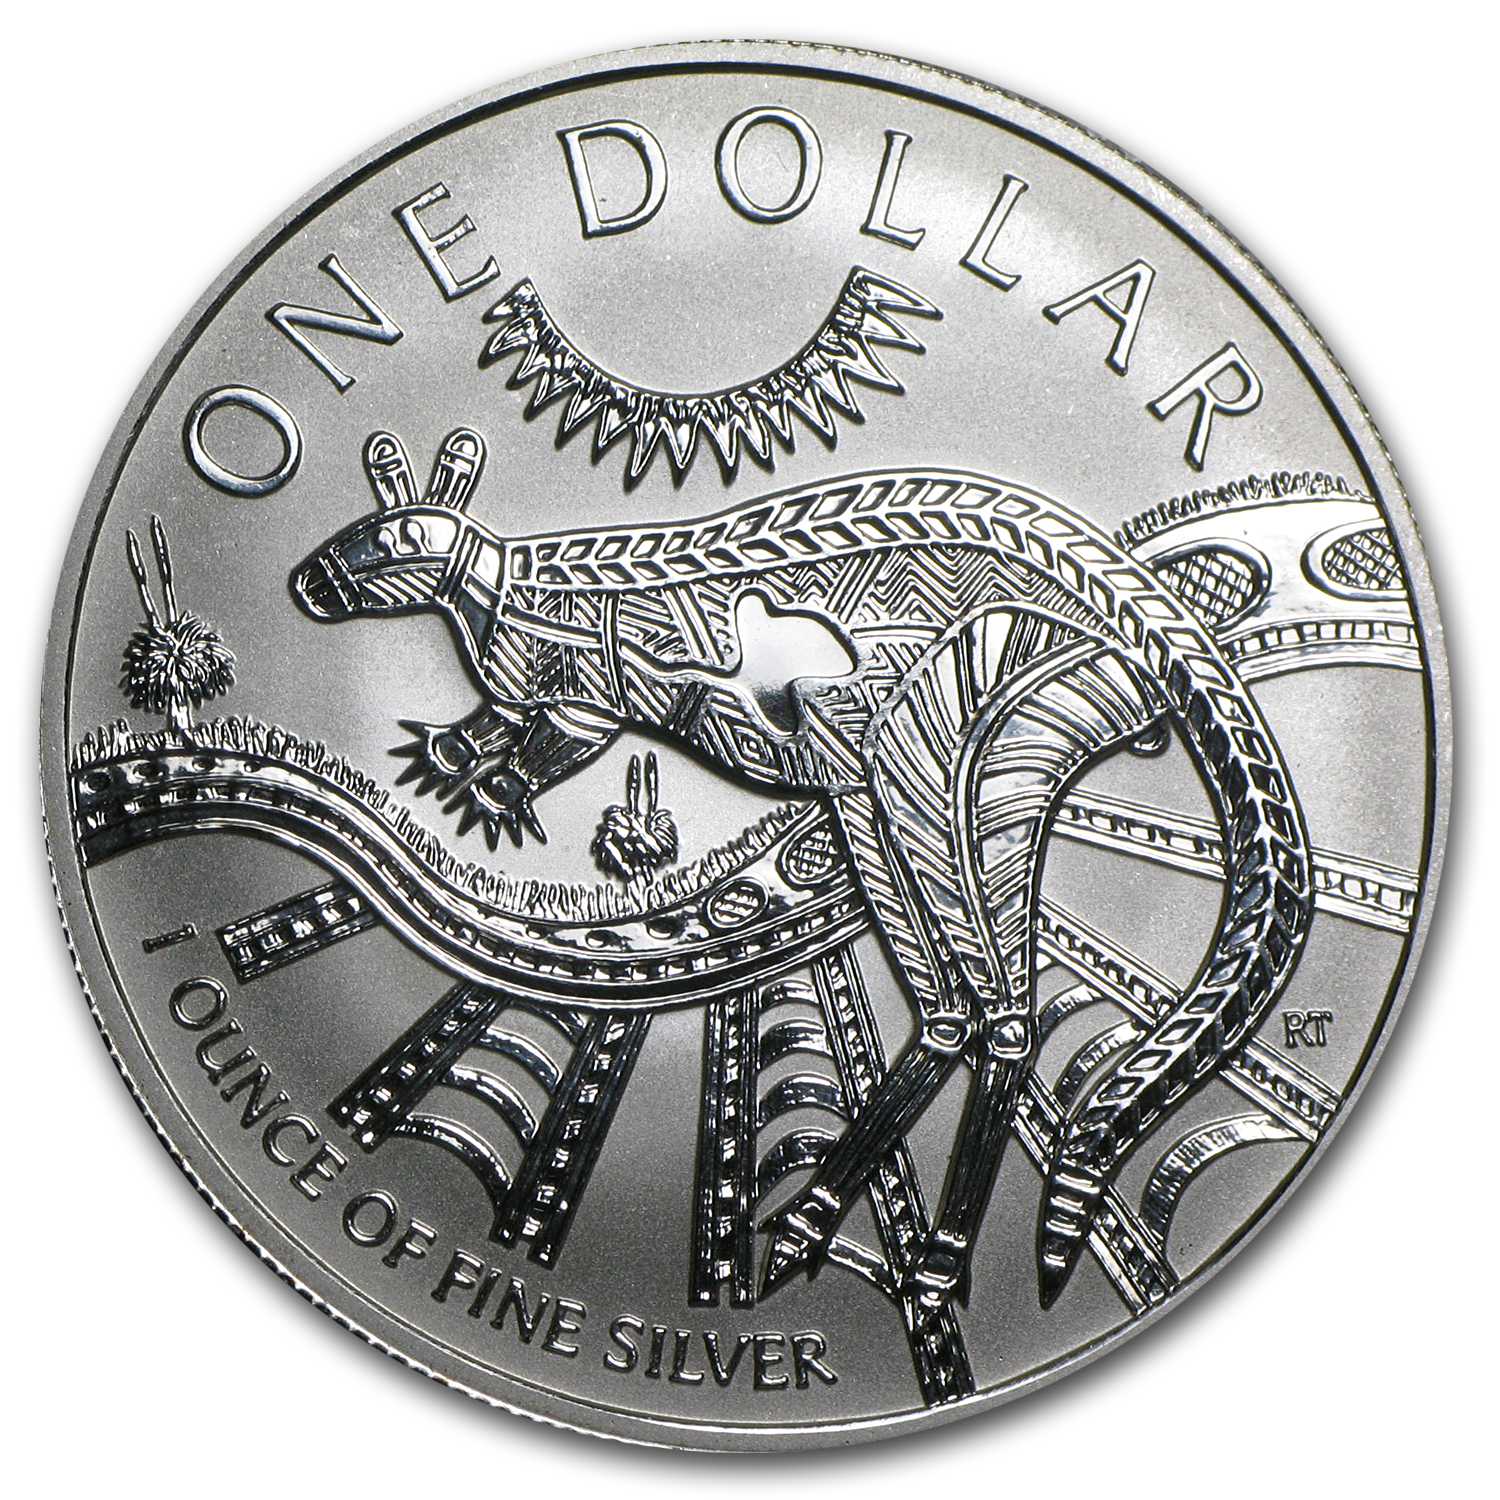 2003 Australia 1 oz Silver Kangaroo (In Display Card)